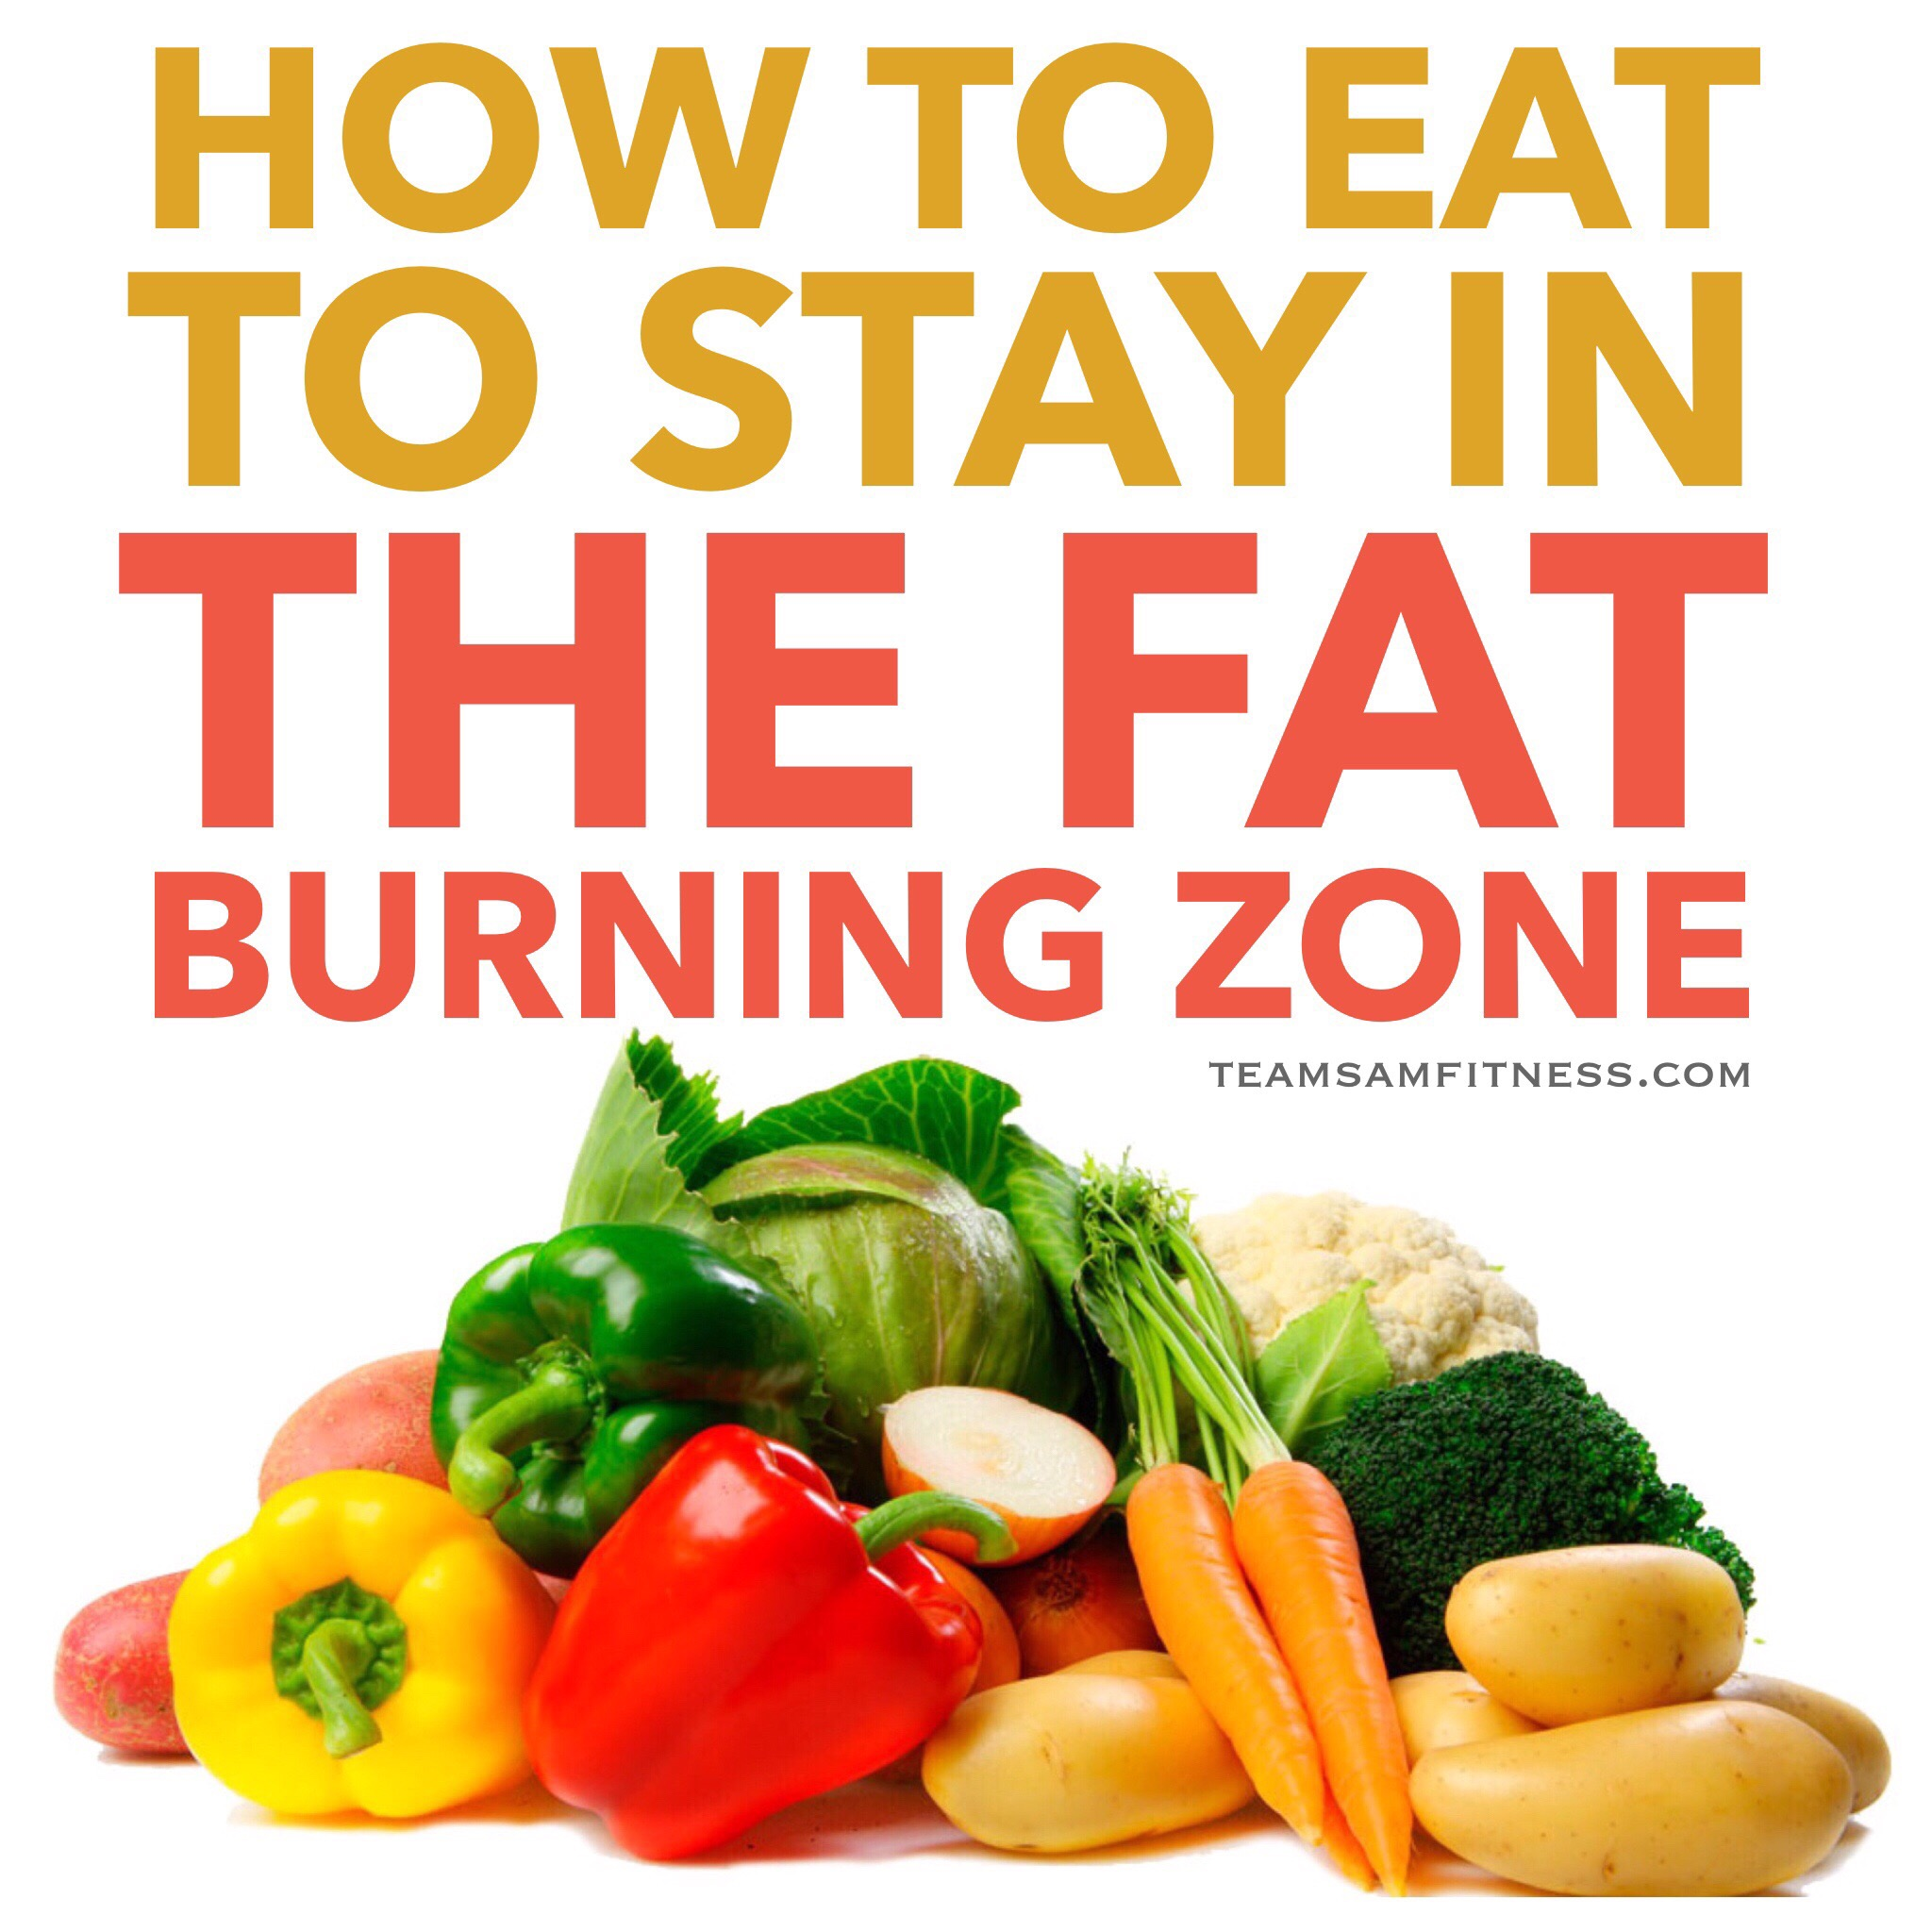 How to eat to stay in the Fat Burning Zone by teamsamfitness.com